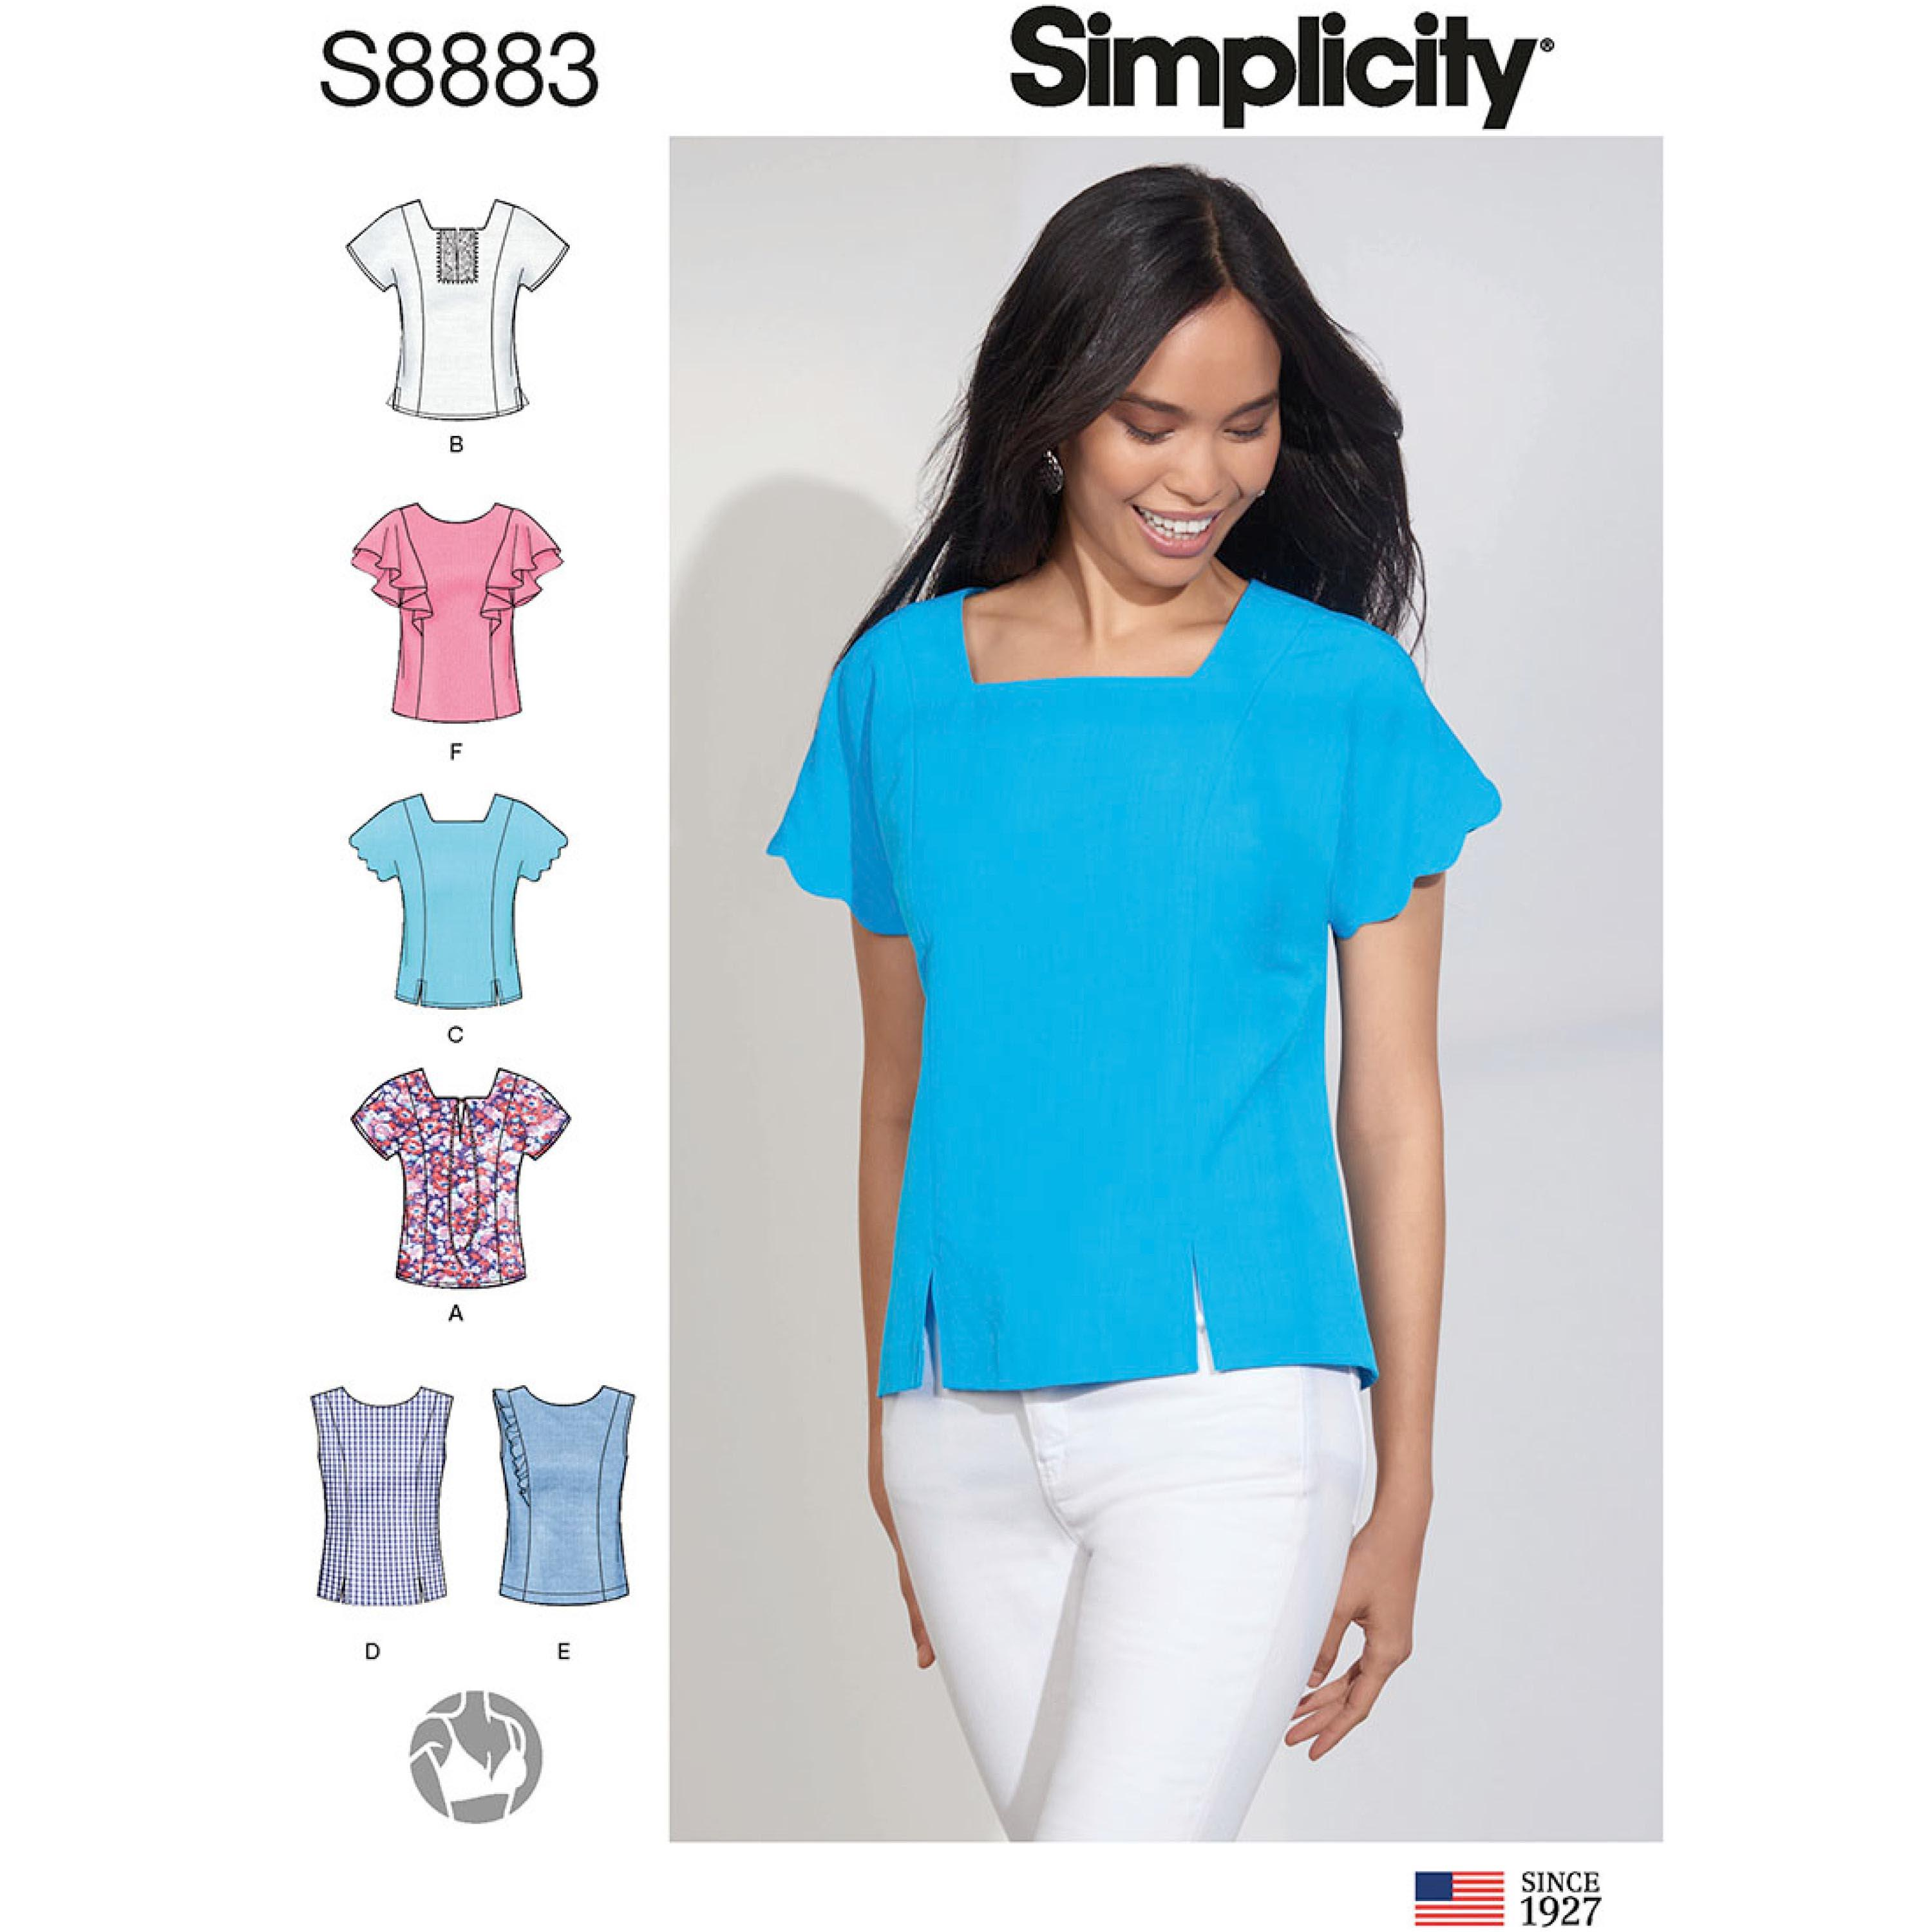 Simplicity S8883 Misses' Tops